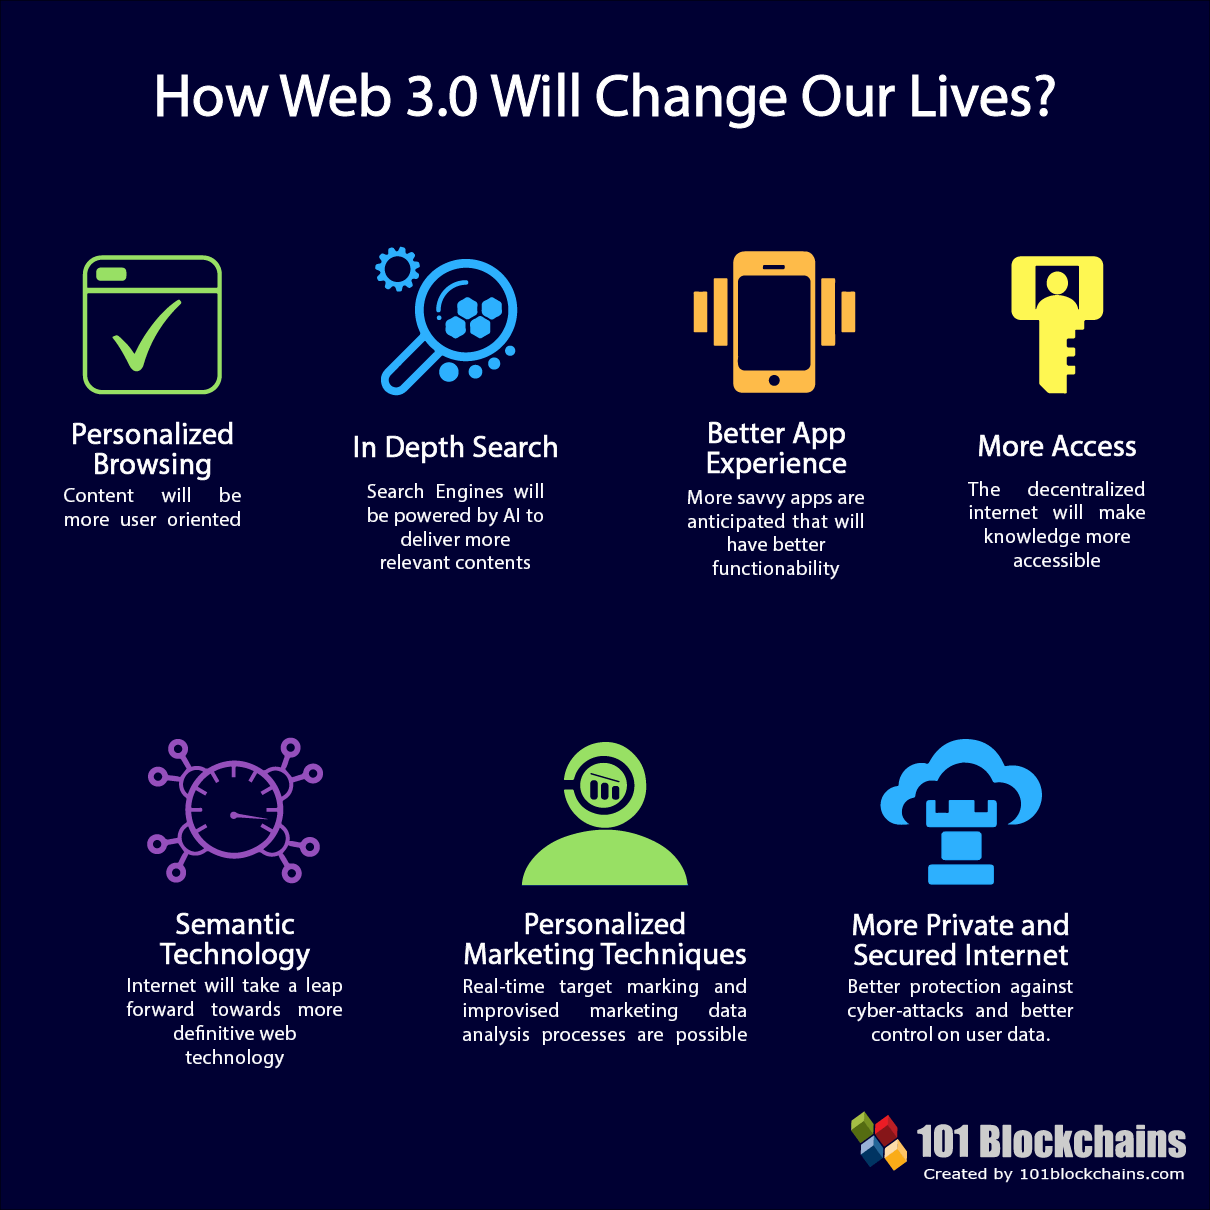 How web 3.0 will change our lives